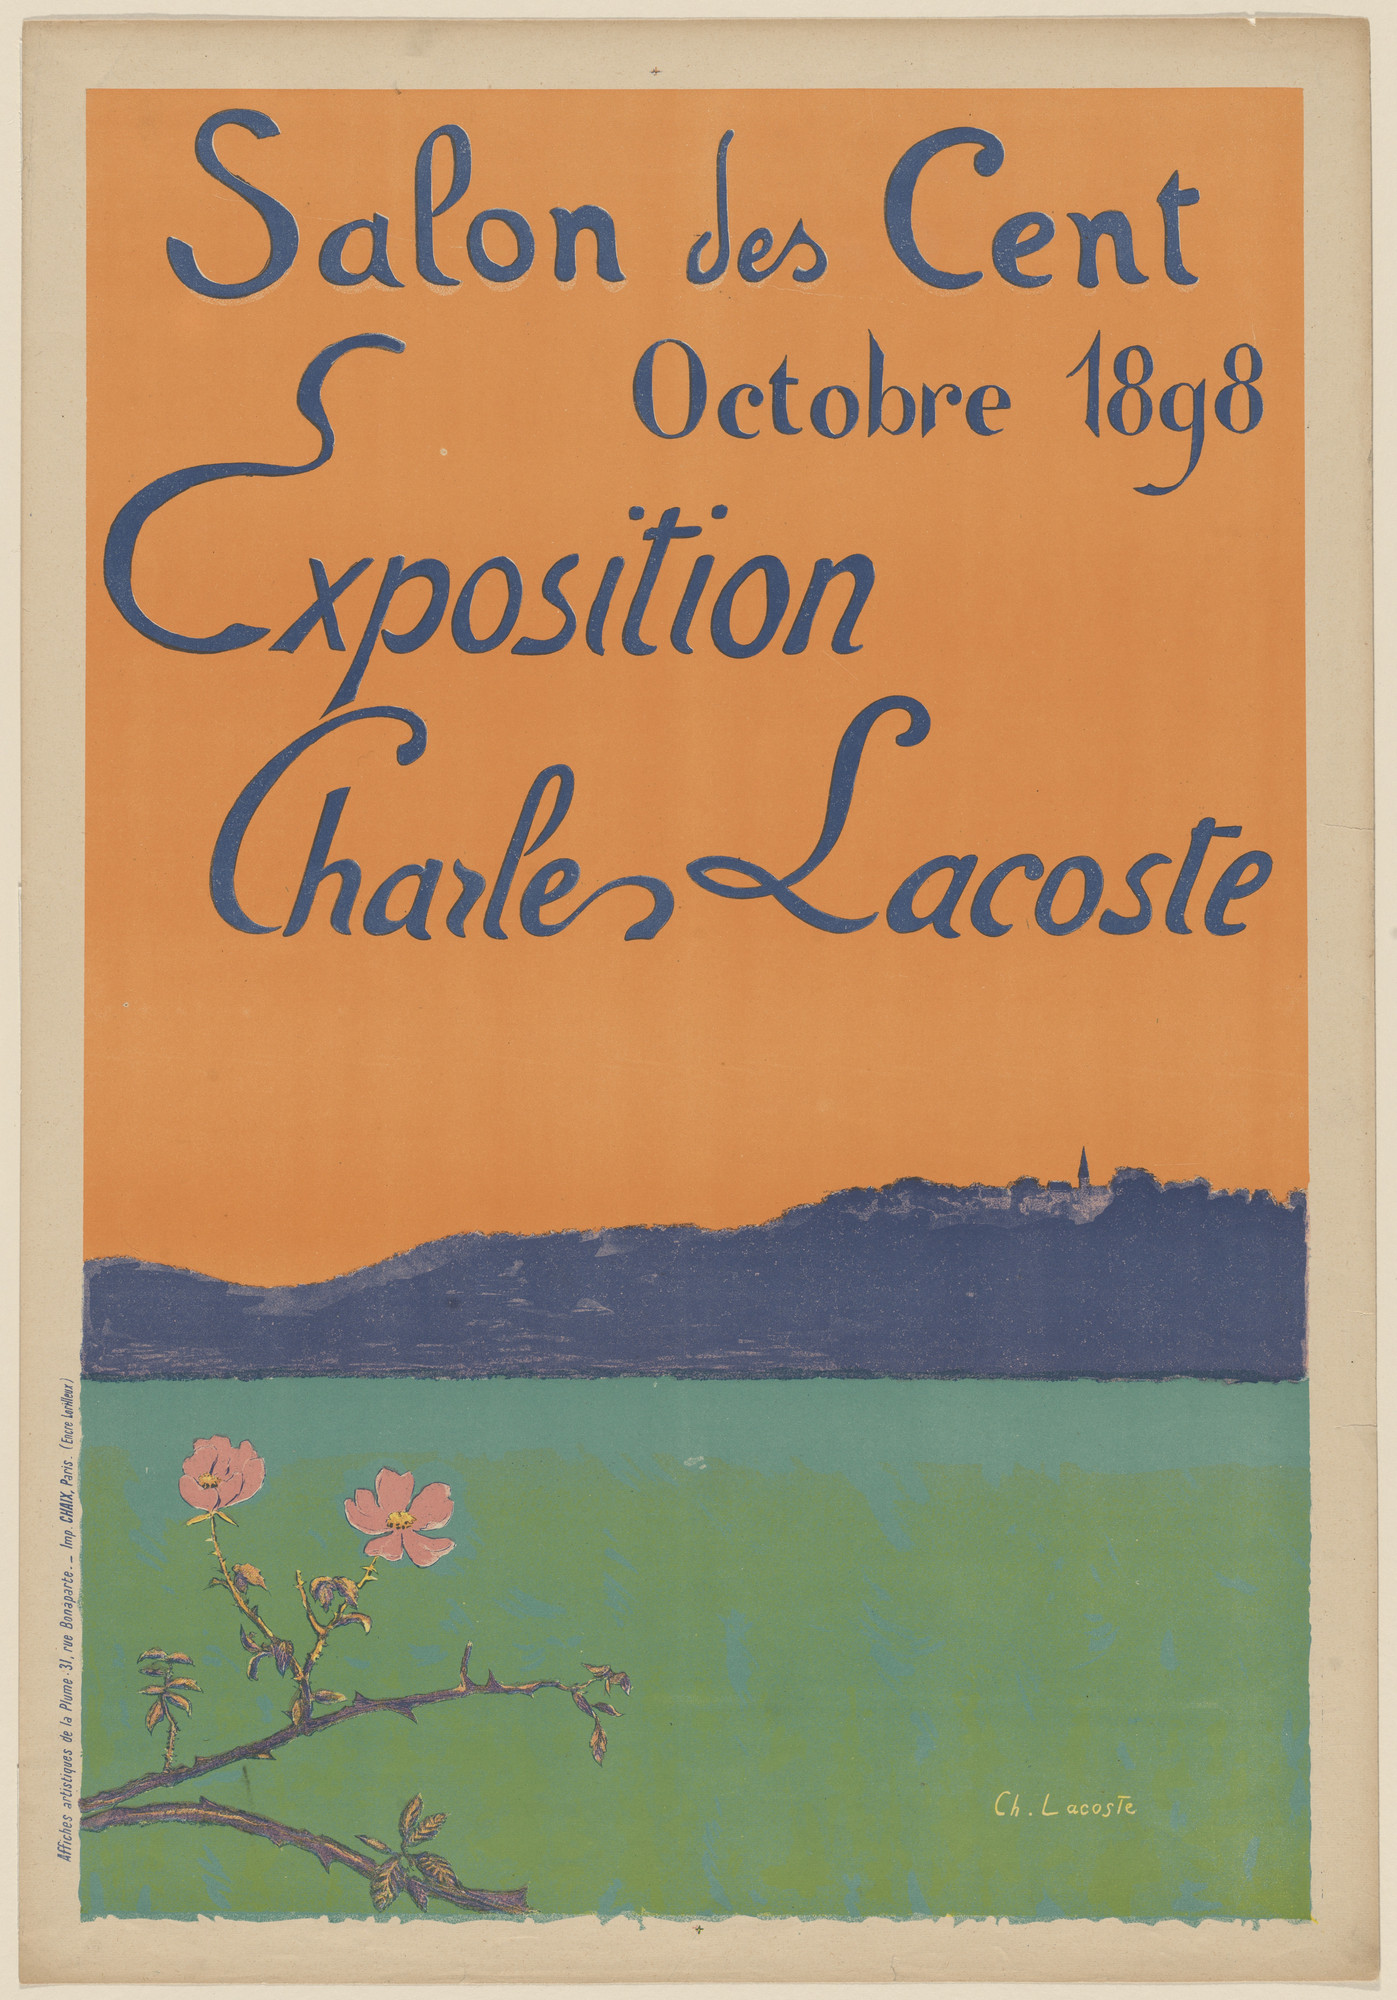 Charles Lacoste. Exposition Charles Lacoste, Salon des Cent. 1898